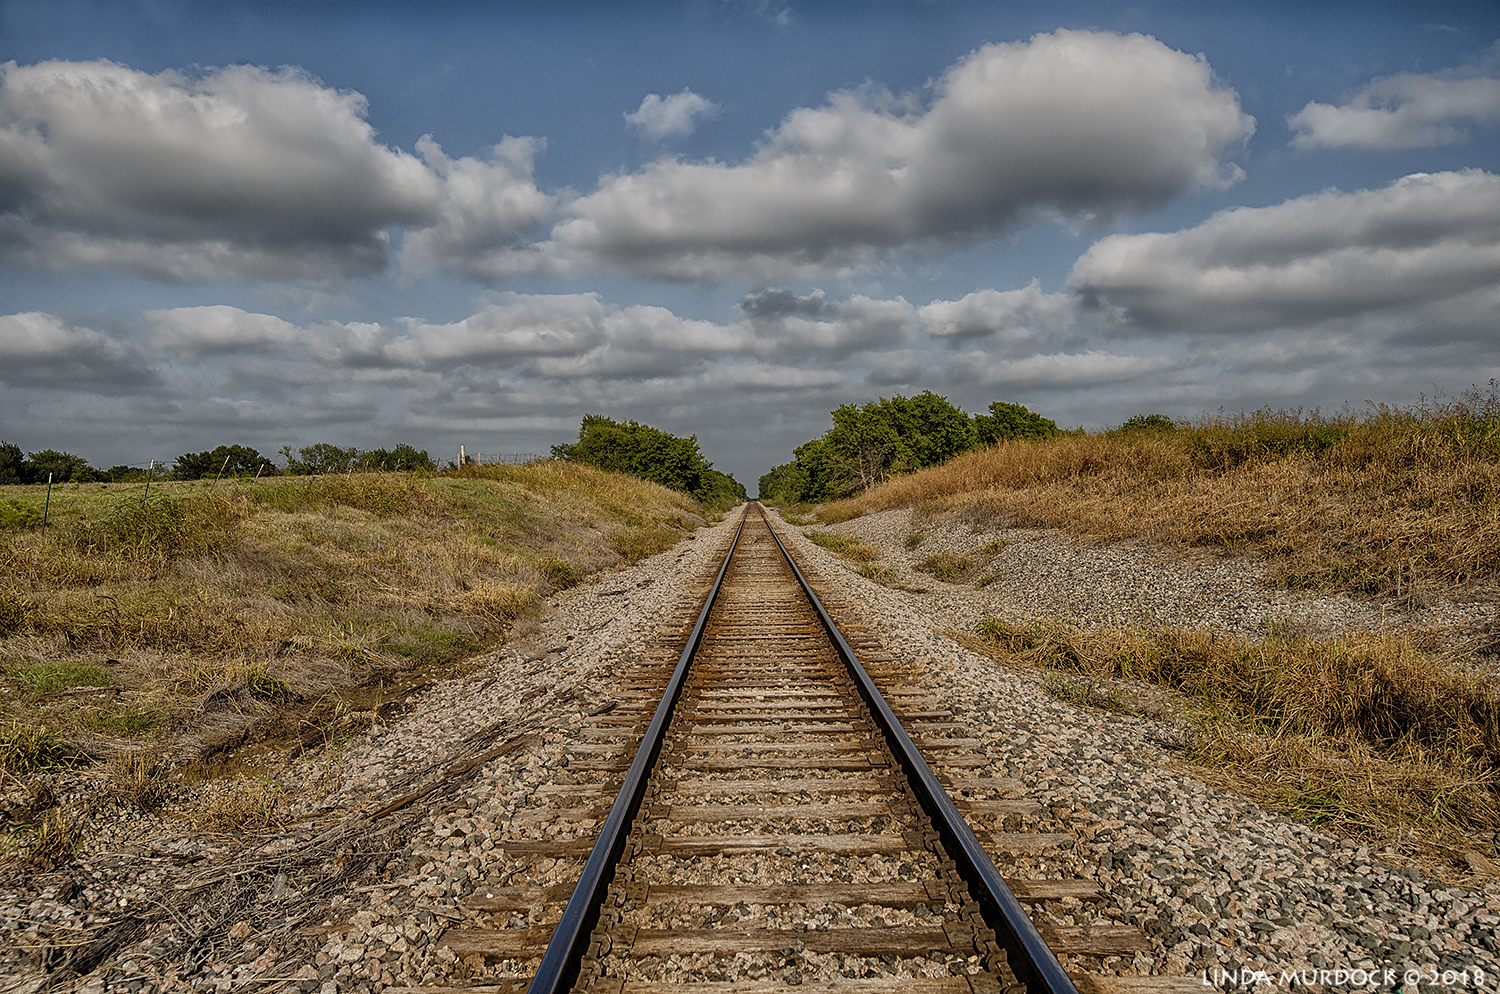 Well the pistons keep on turning  And the wheels go round and round  The steel rails are cold and hard  For the miles that they go down   Nikon D810 with Tamron 15-30 f/2.8 ~ ISO 200 f/6.3 at 29mm HDR; hand-held